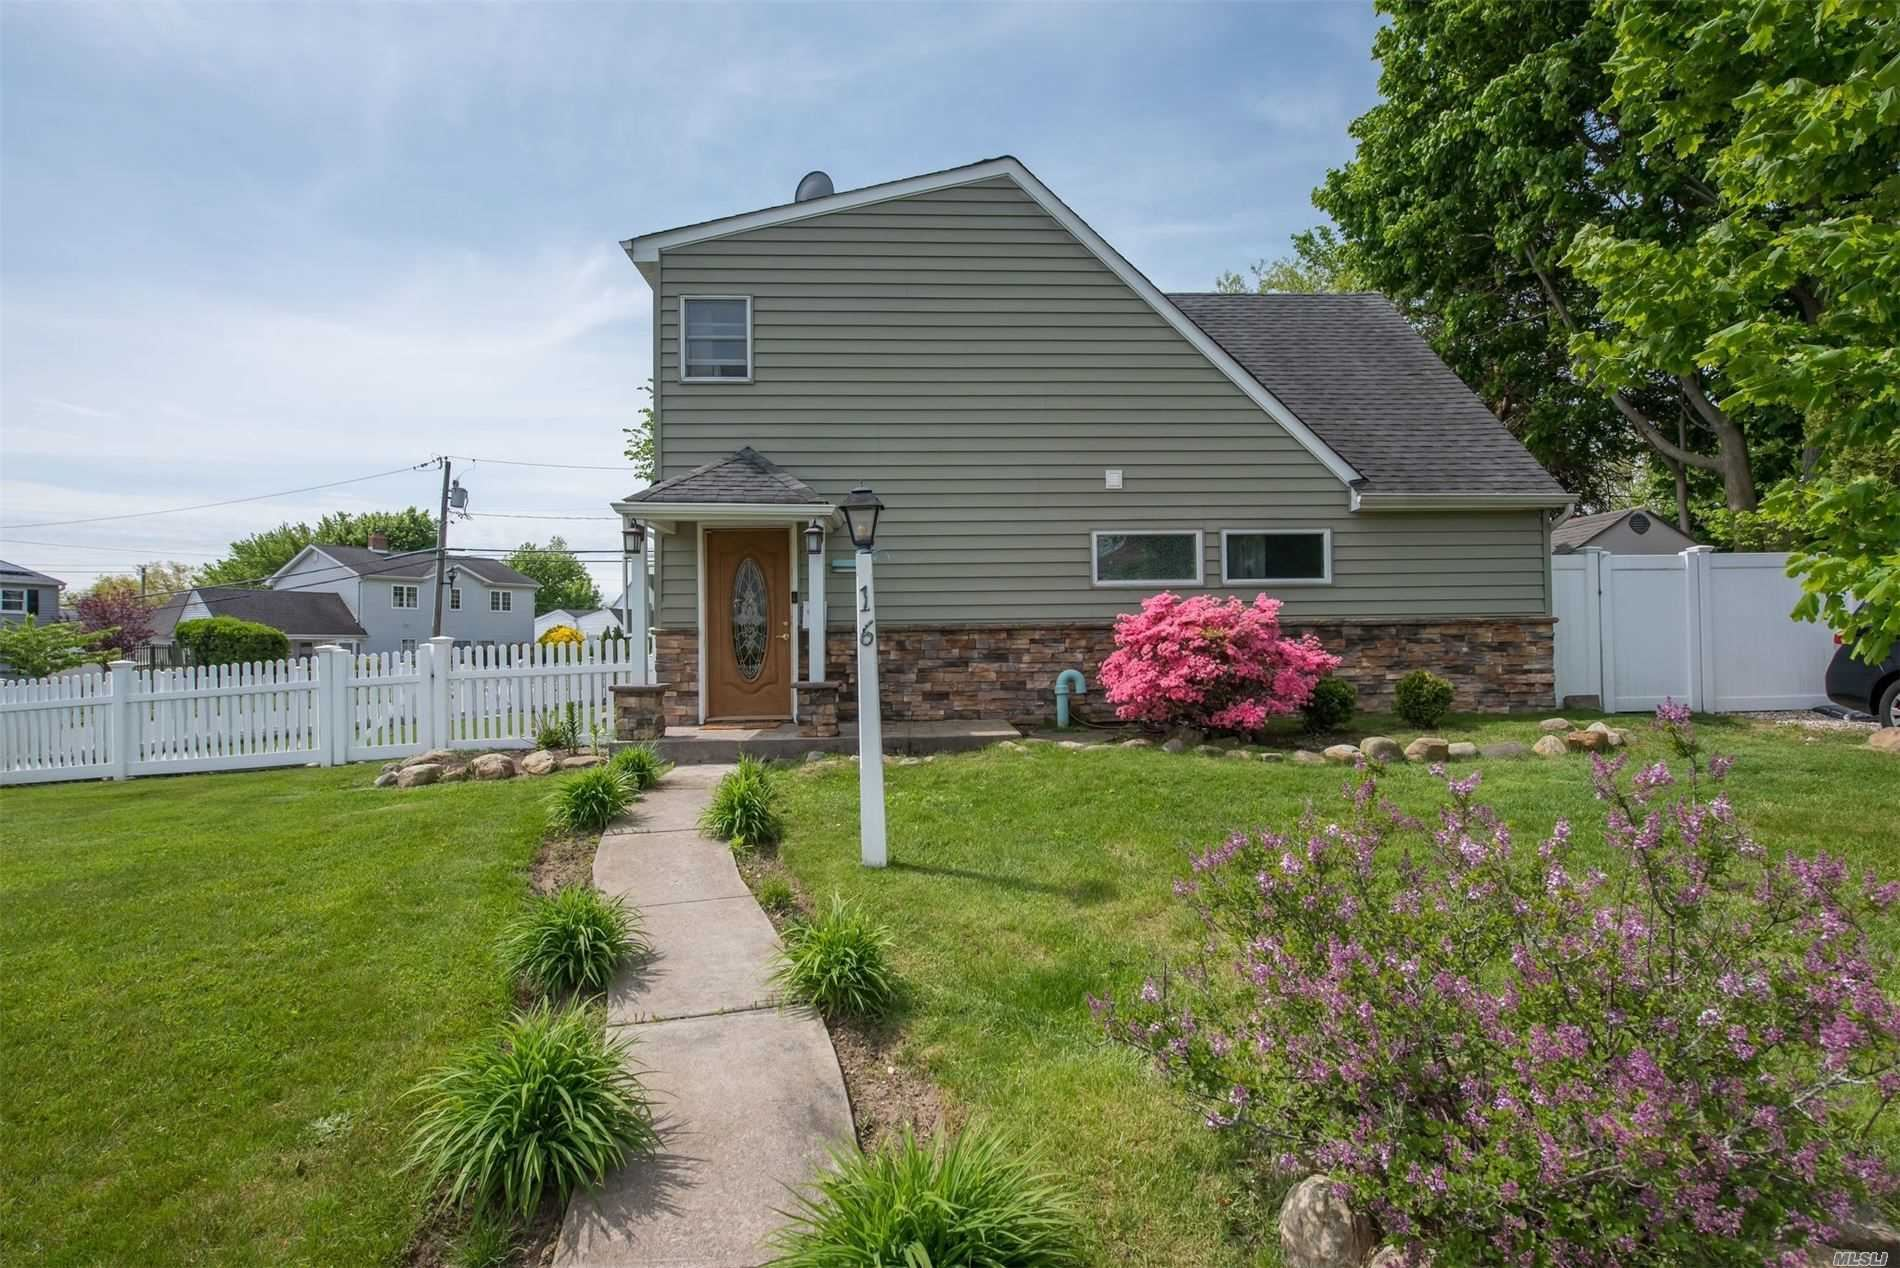 16 Sunrise Ln, Levittown, NY 11756 - MLS#: 3217350